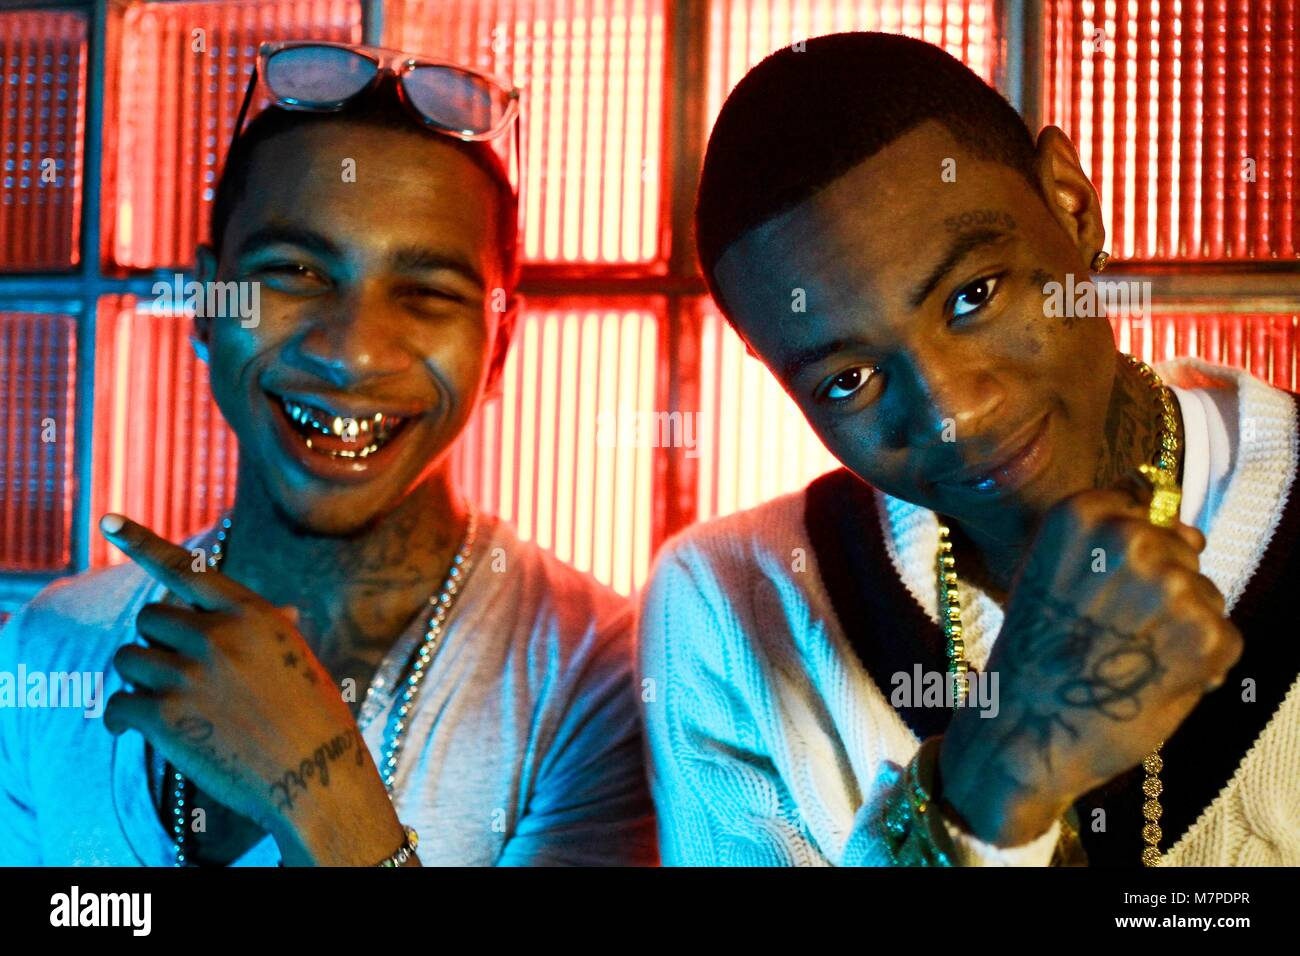 Lil B and Soulja Boy on set of his music video with Lil B